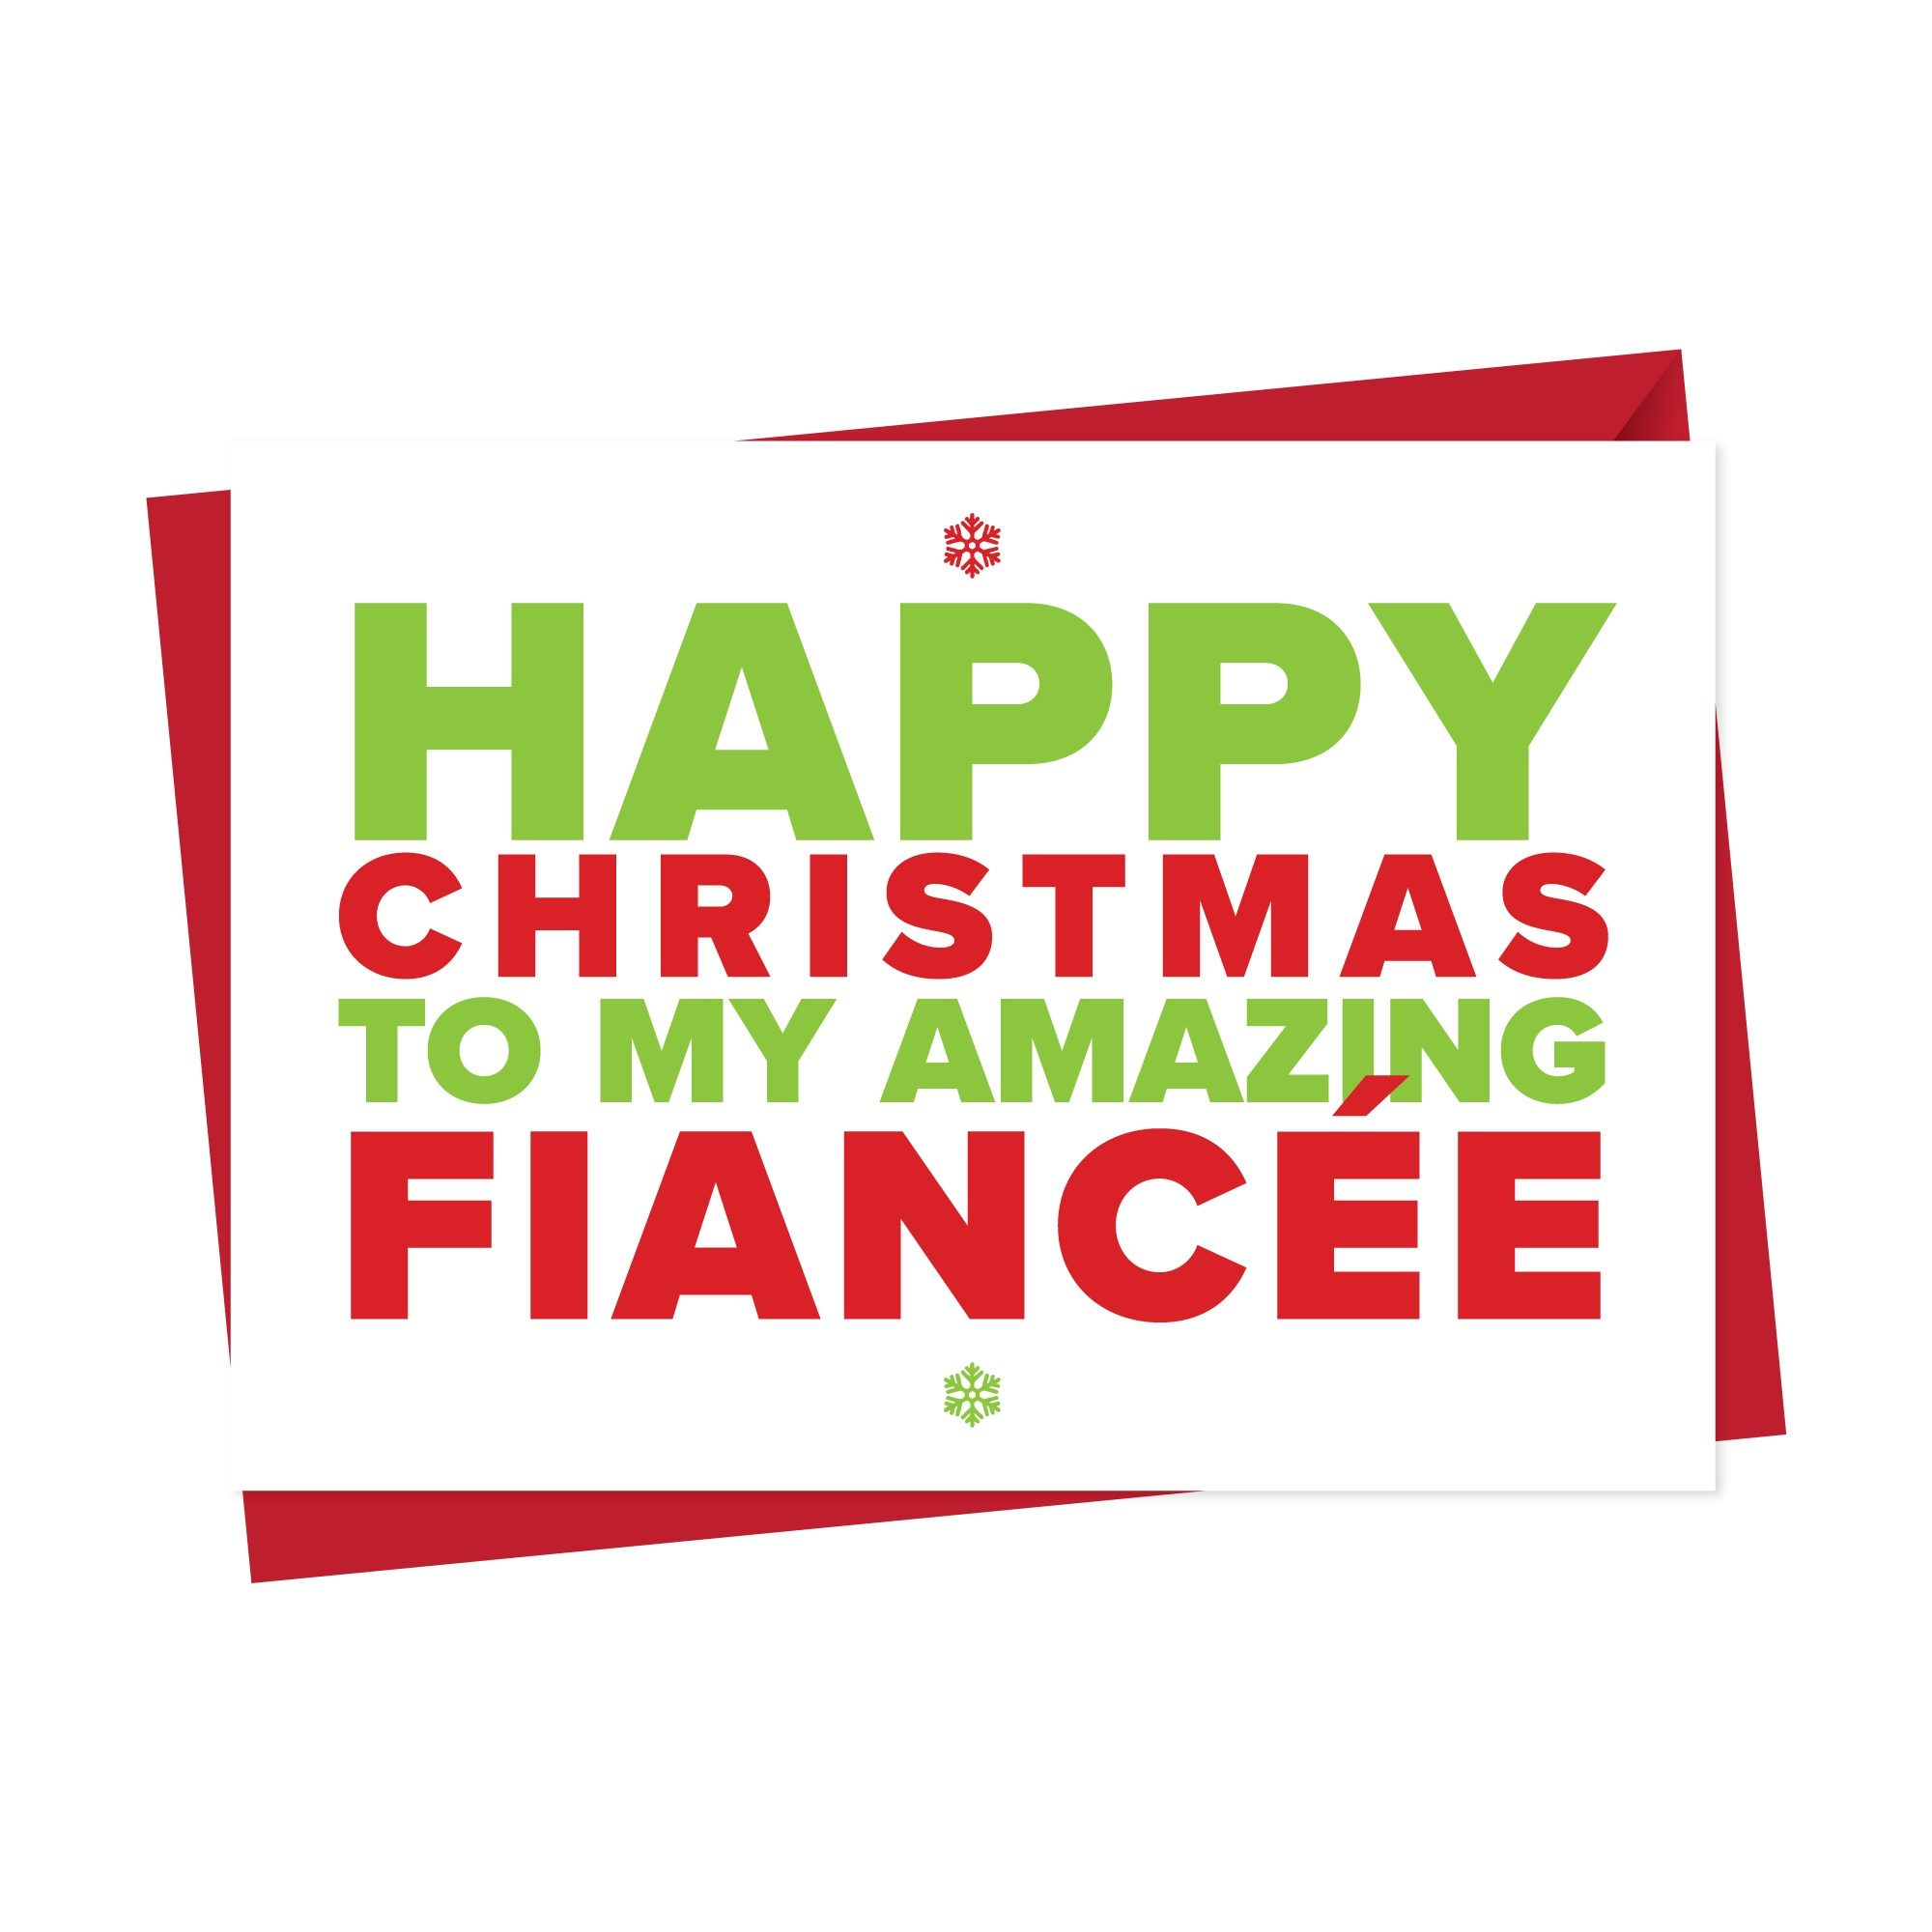 Christmas Card for An Amazing Fiance OR Fiancee